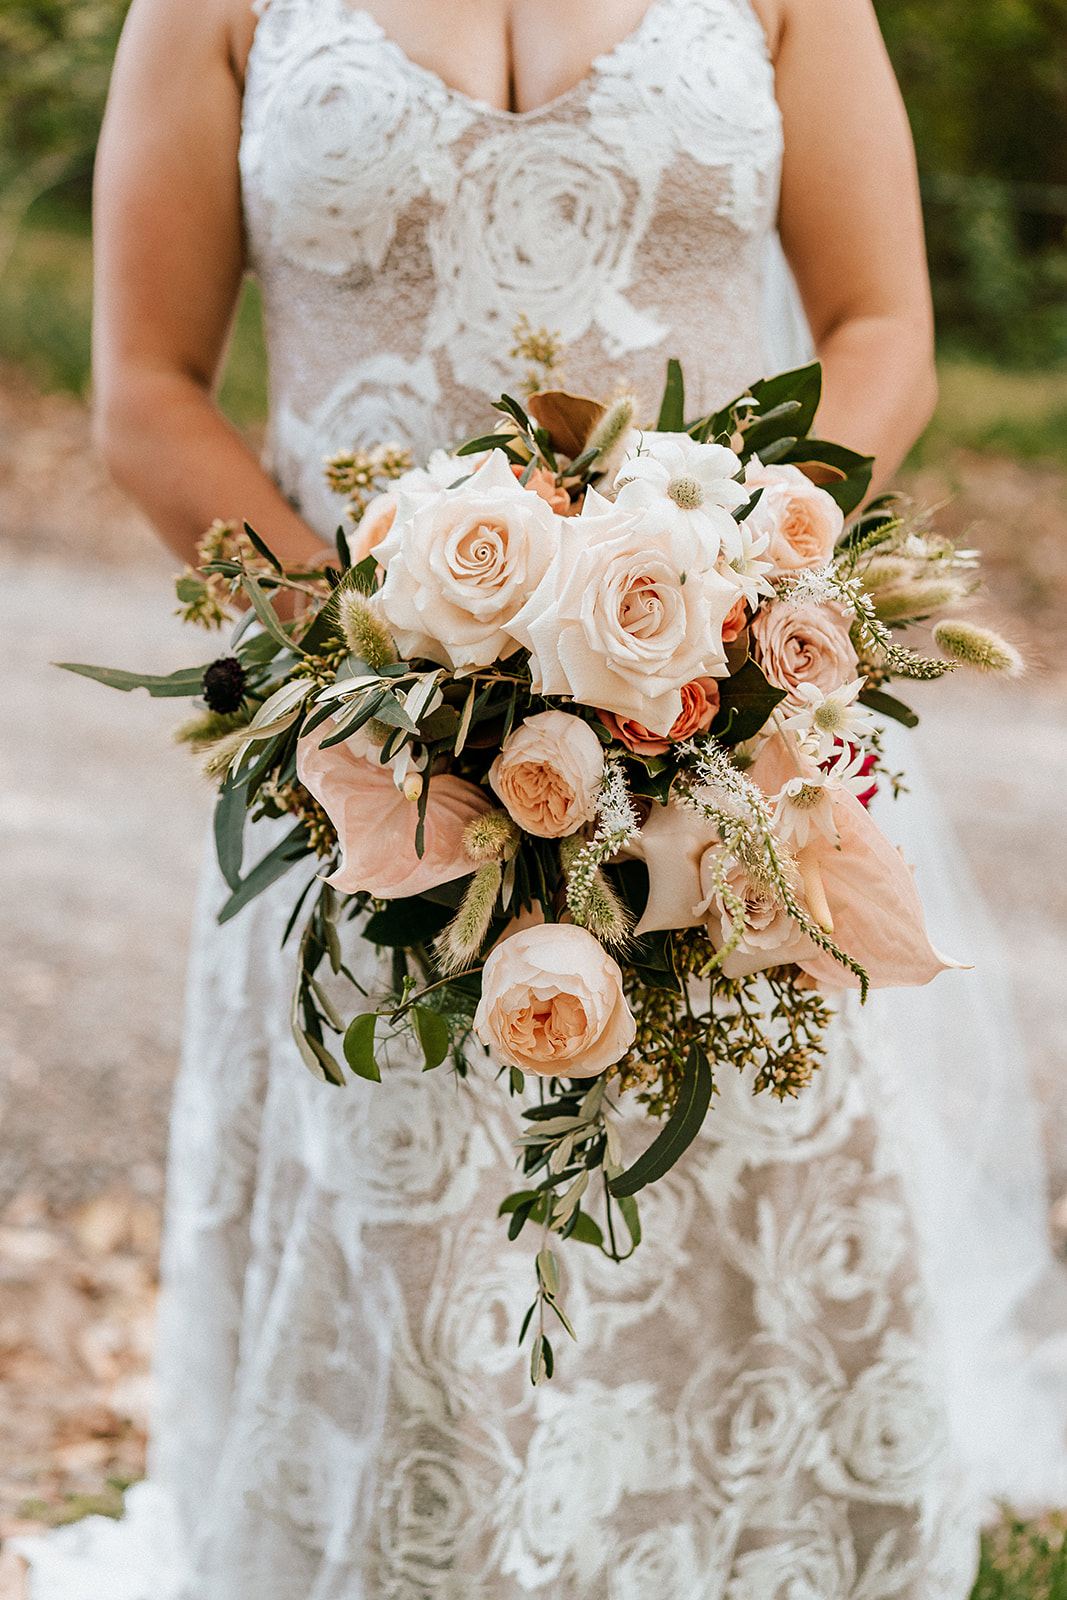 Modern wedding bouquet in peach tones